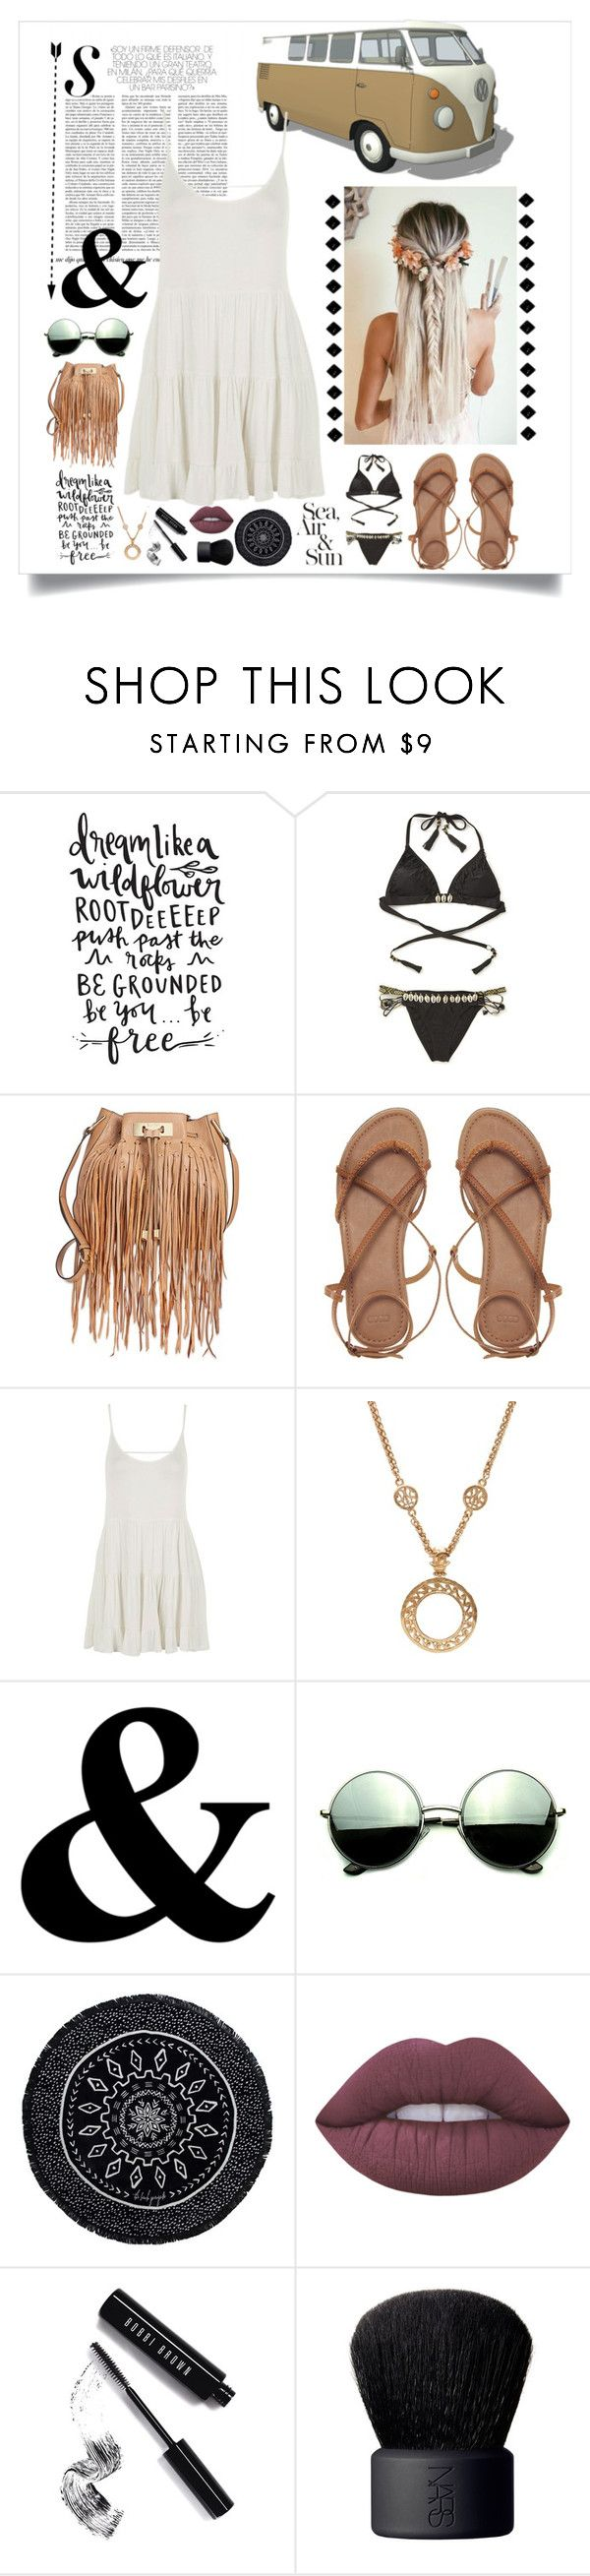 """""""Modern Hippie"""" by rhiannonpsayer on Polyvore featuring Amenapih, Calvin Klein, ASOS, Topshop, Chanel, Revo, The Beach People, Lime Crime, Bobbi Brown Cosmetics and NARS Cosmetics"""